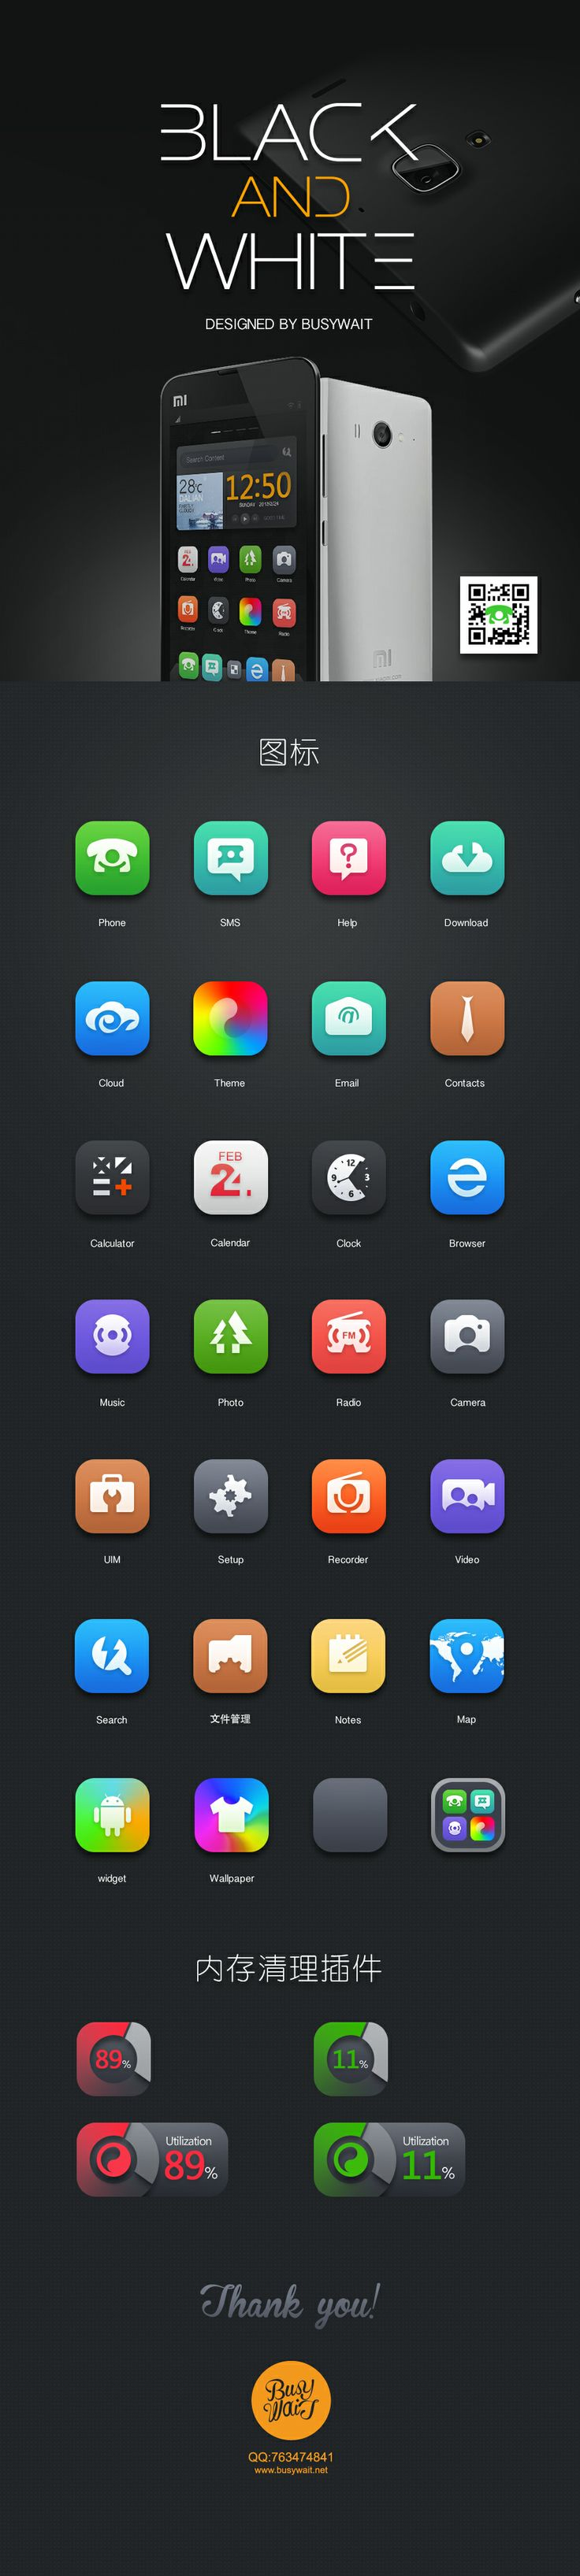 Pin on Icons and Buttons